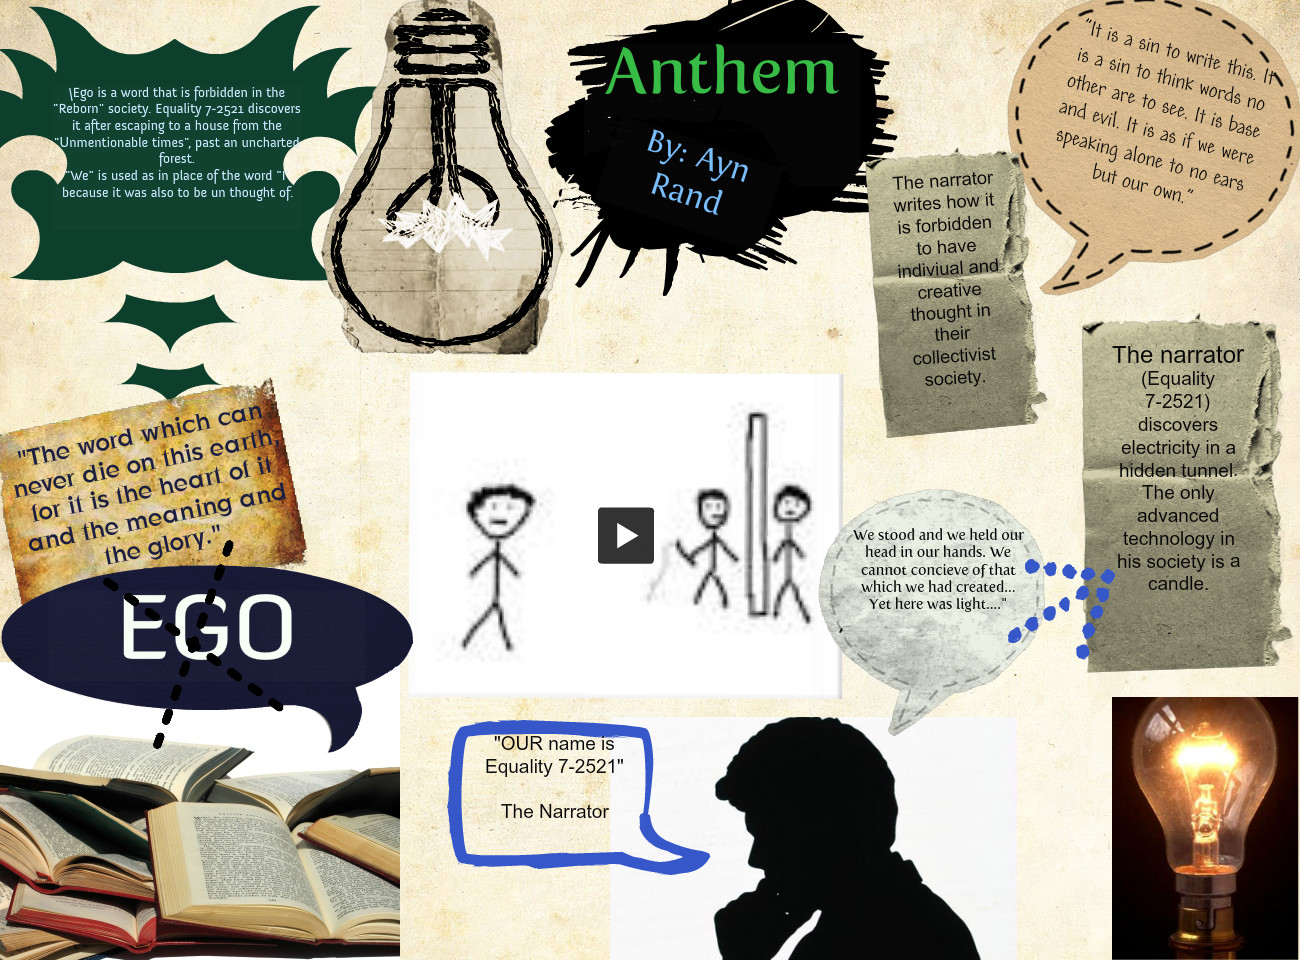 life mandates in the book anthem by ayn rand Ayn rand saw common core agenda in  i recently read ayn rand's 1937 book, anthem  came to give us our life mandates which tell those who reach their.